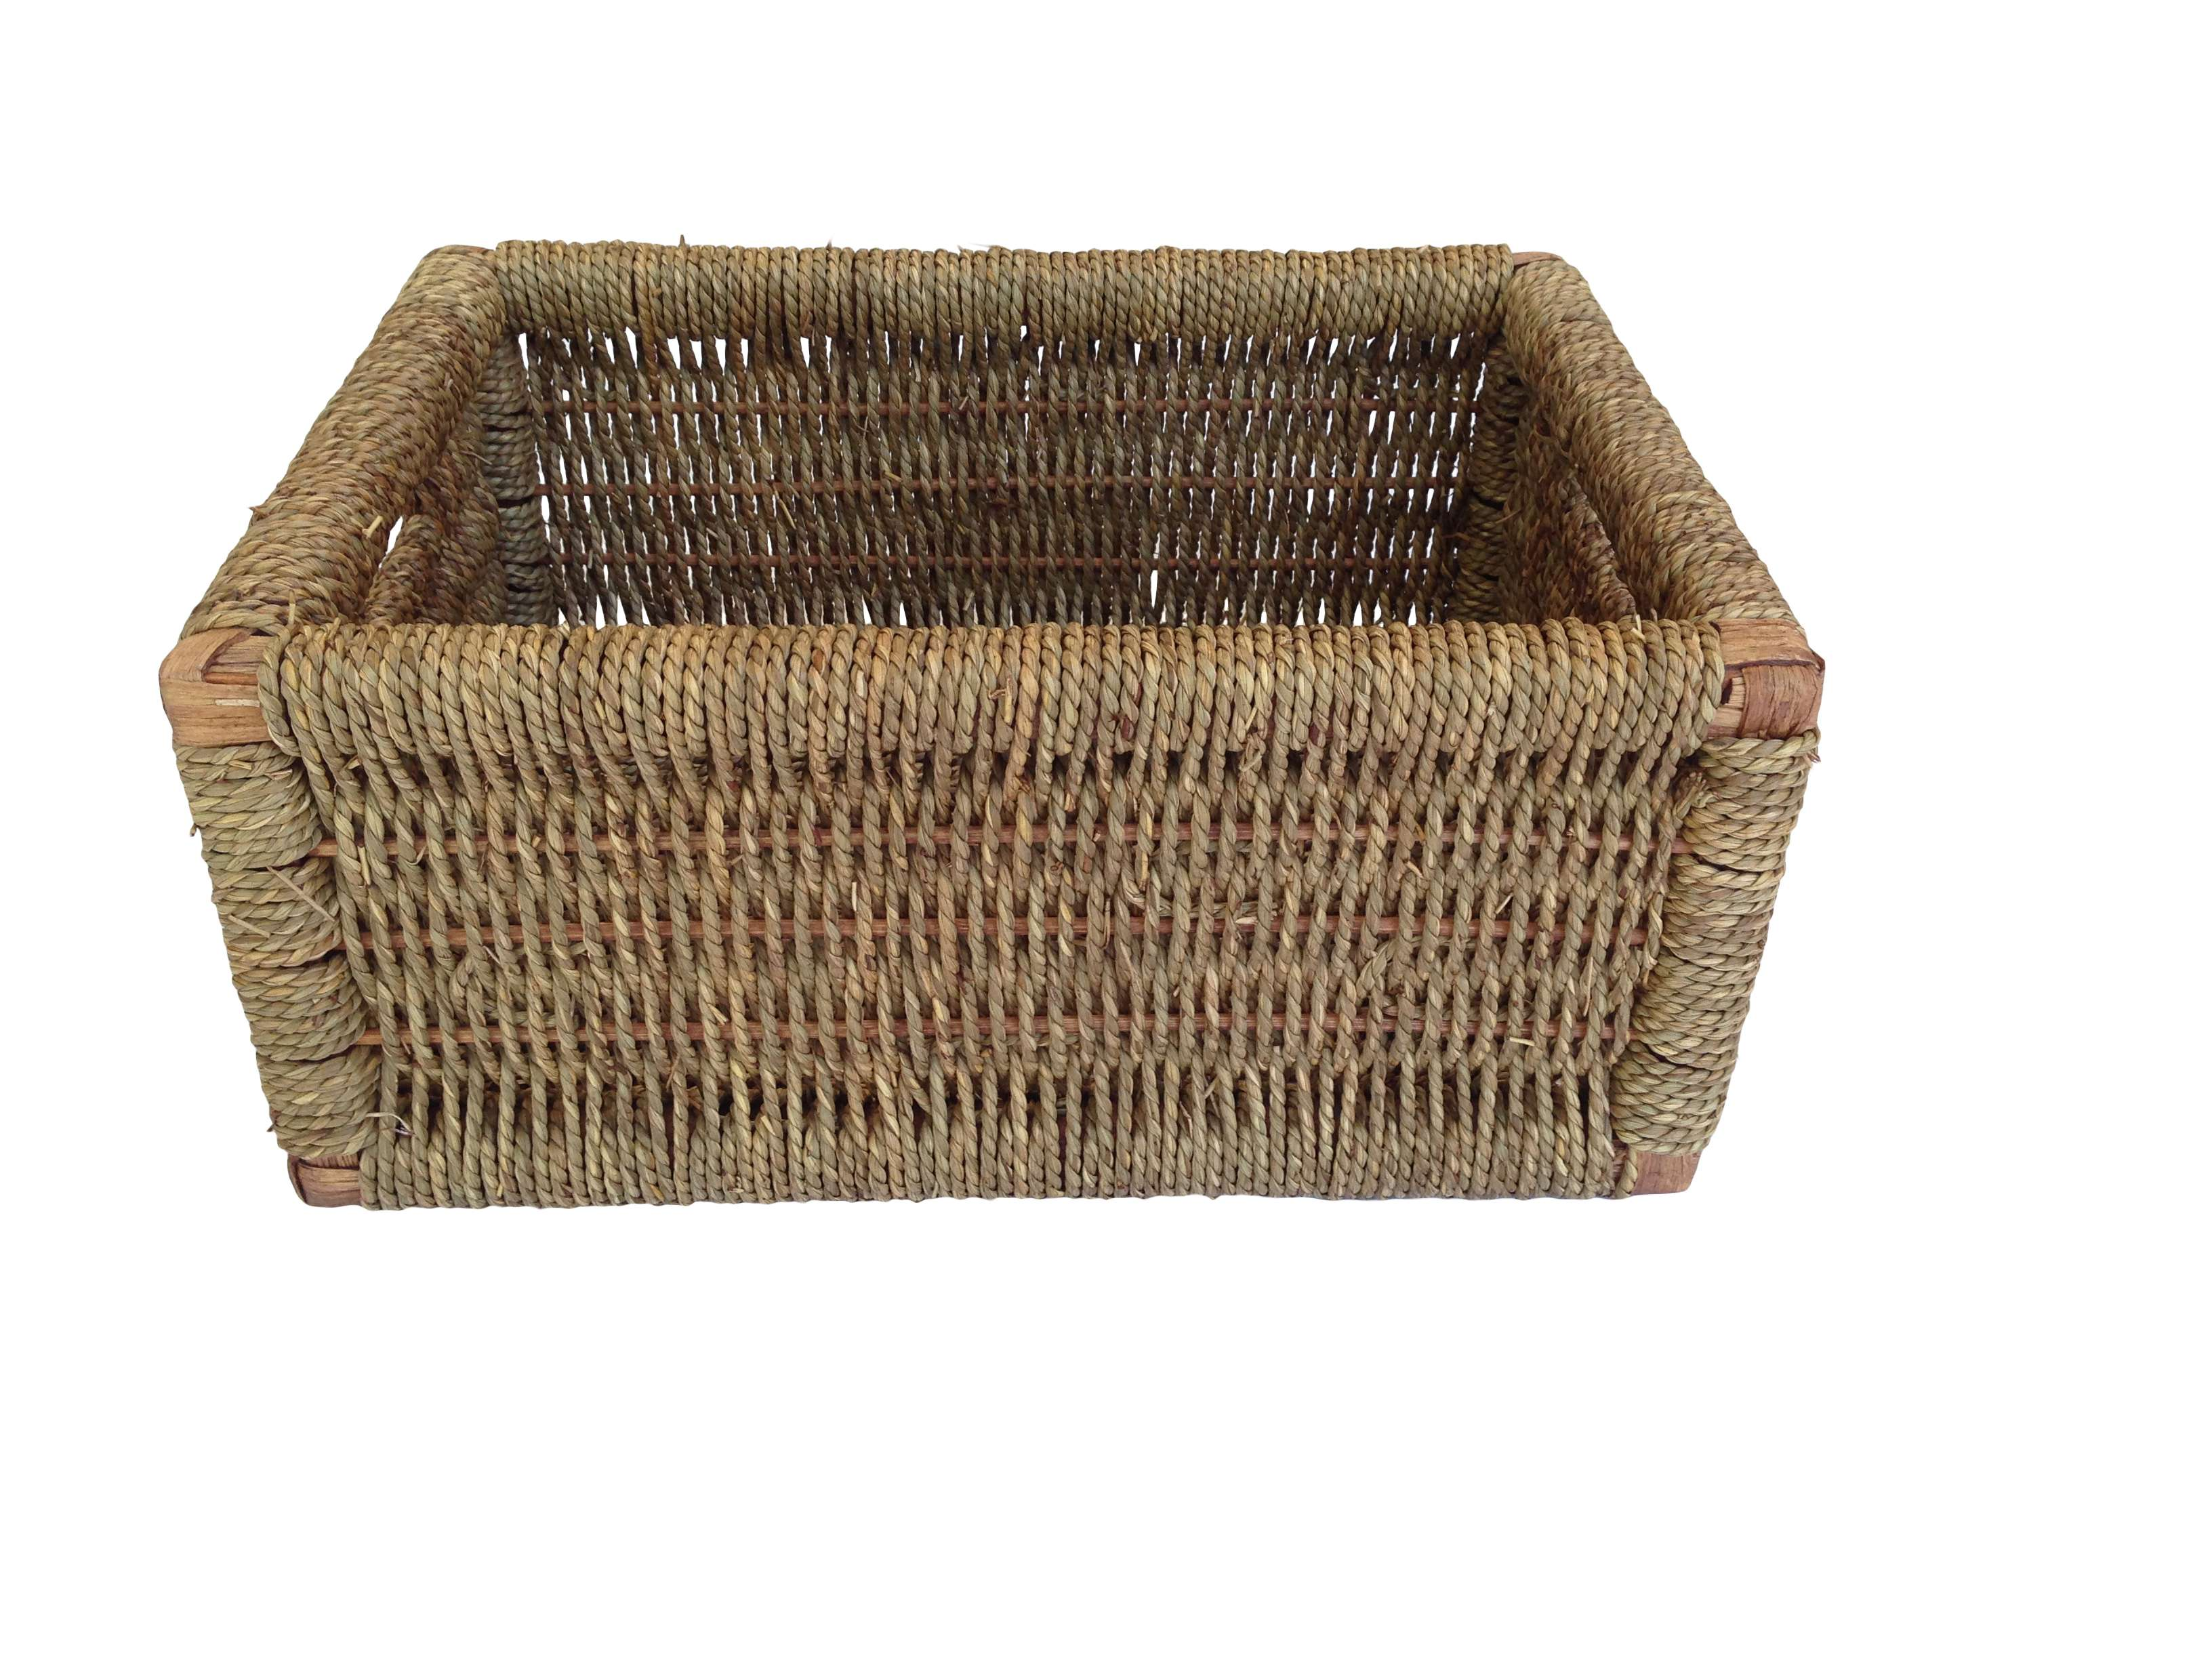 House Seagrass Storage Basket Large Home Company Ltd